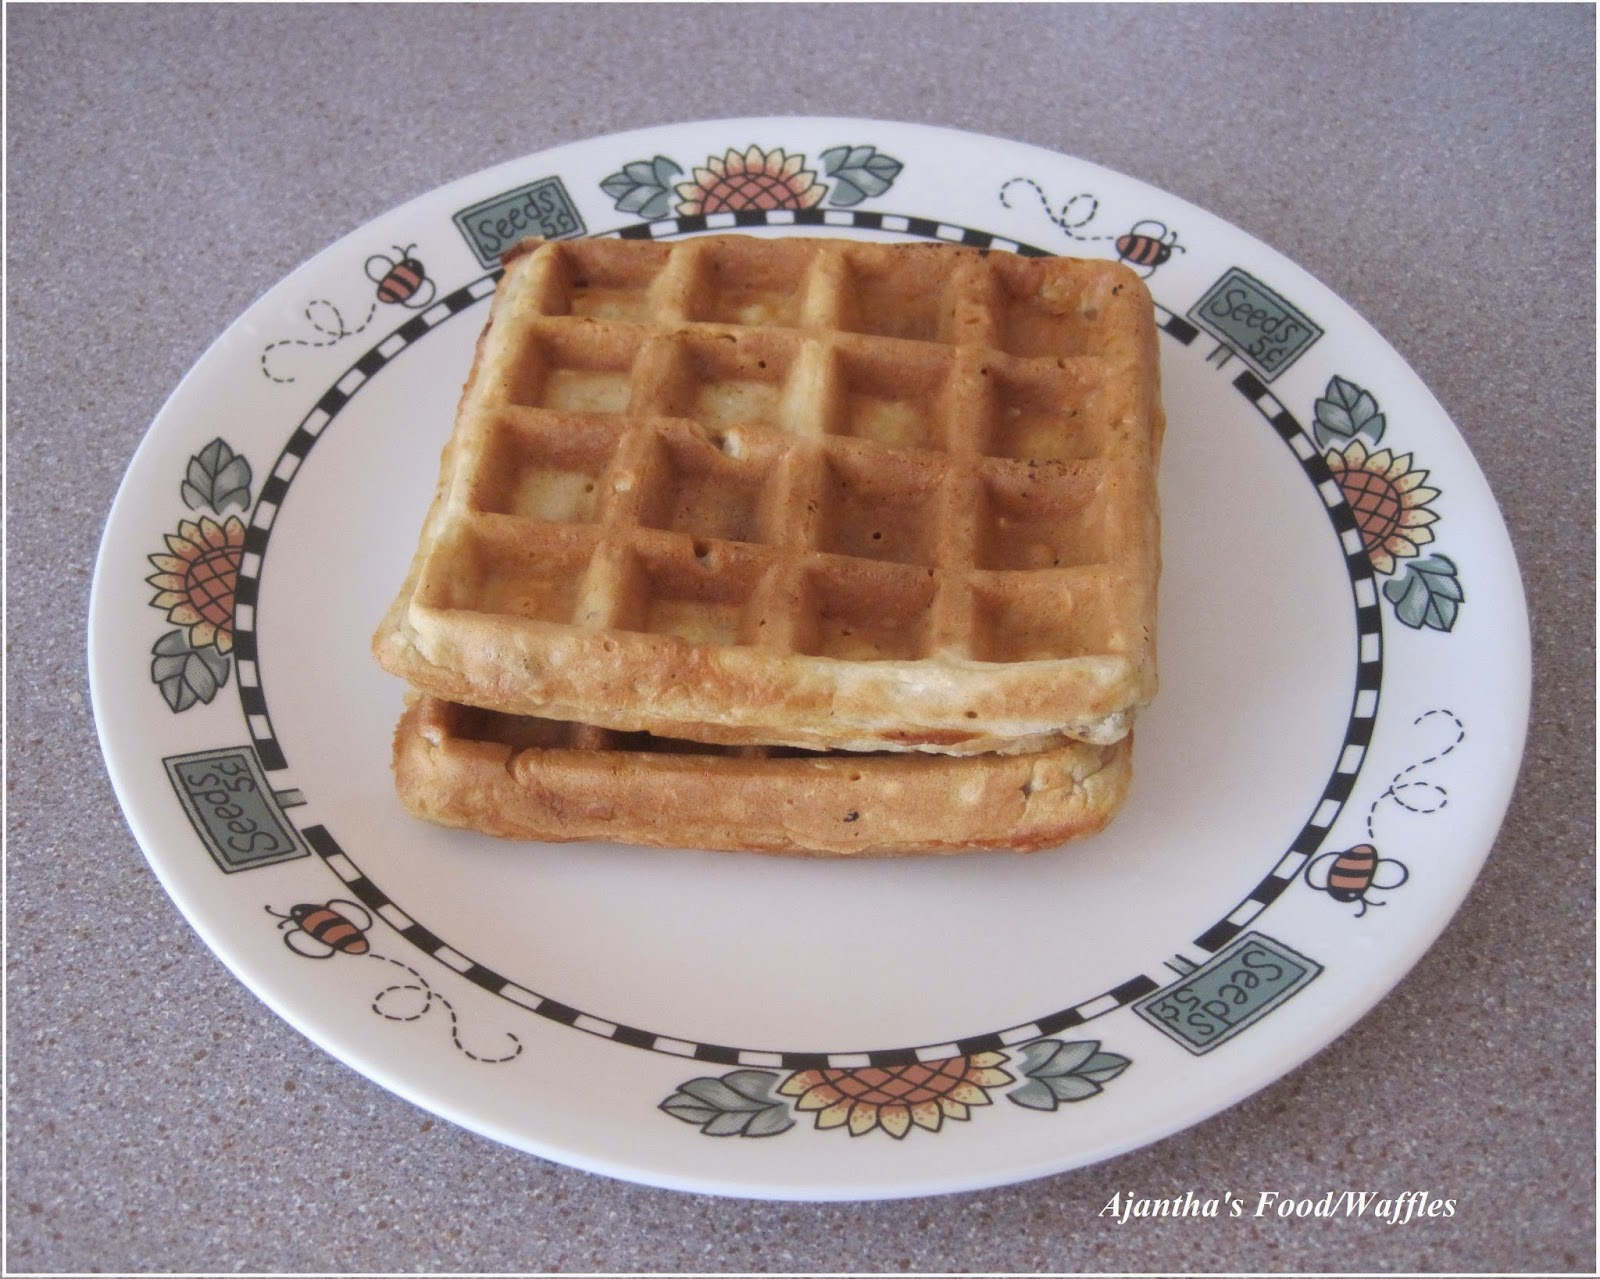 Ajantha'sfood/Homemade Waffles